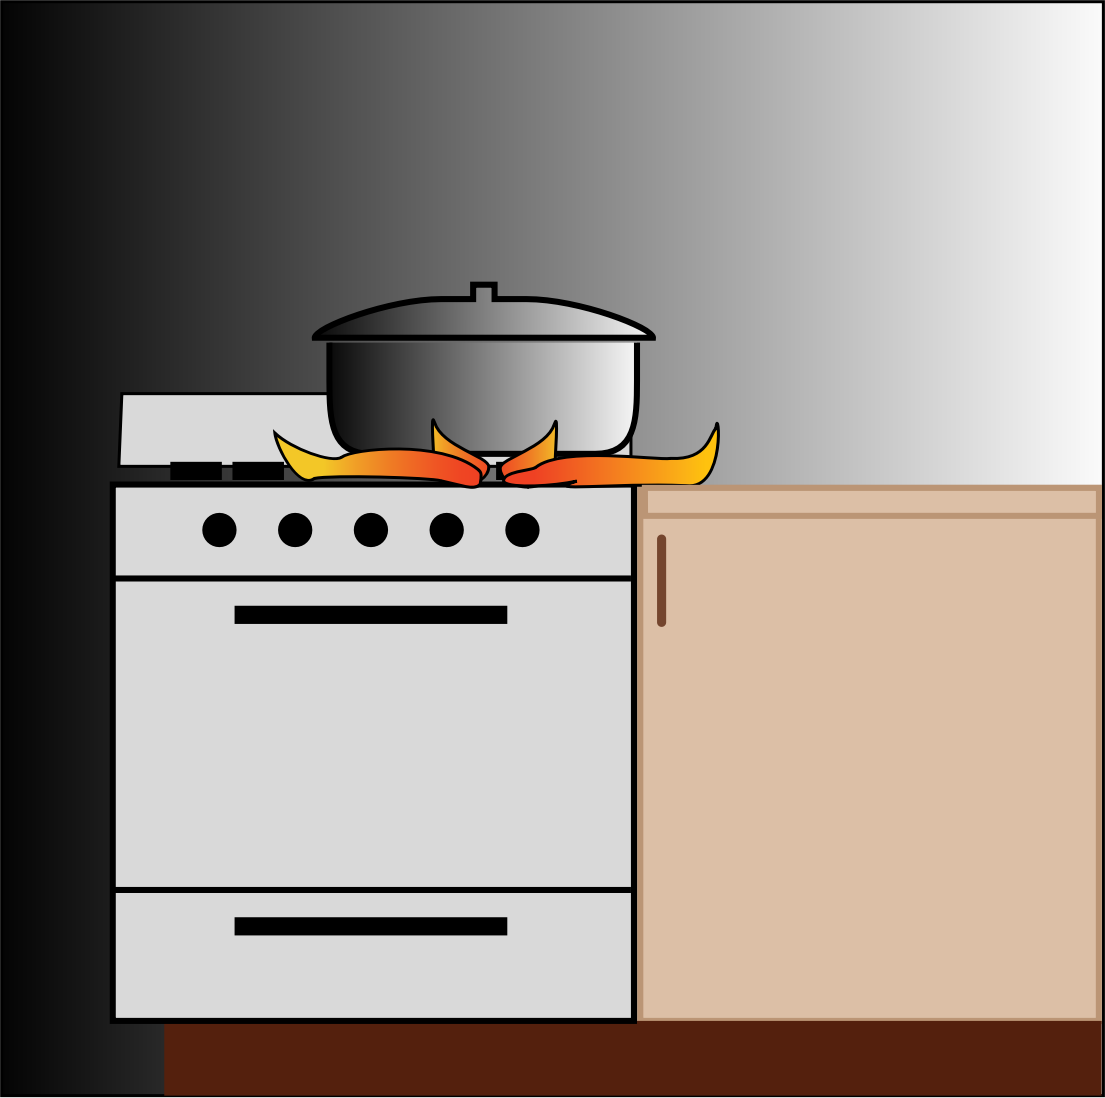 Clipart pot on stove for Art and cuisine pans